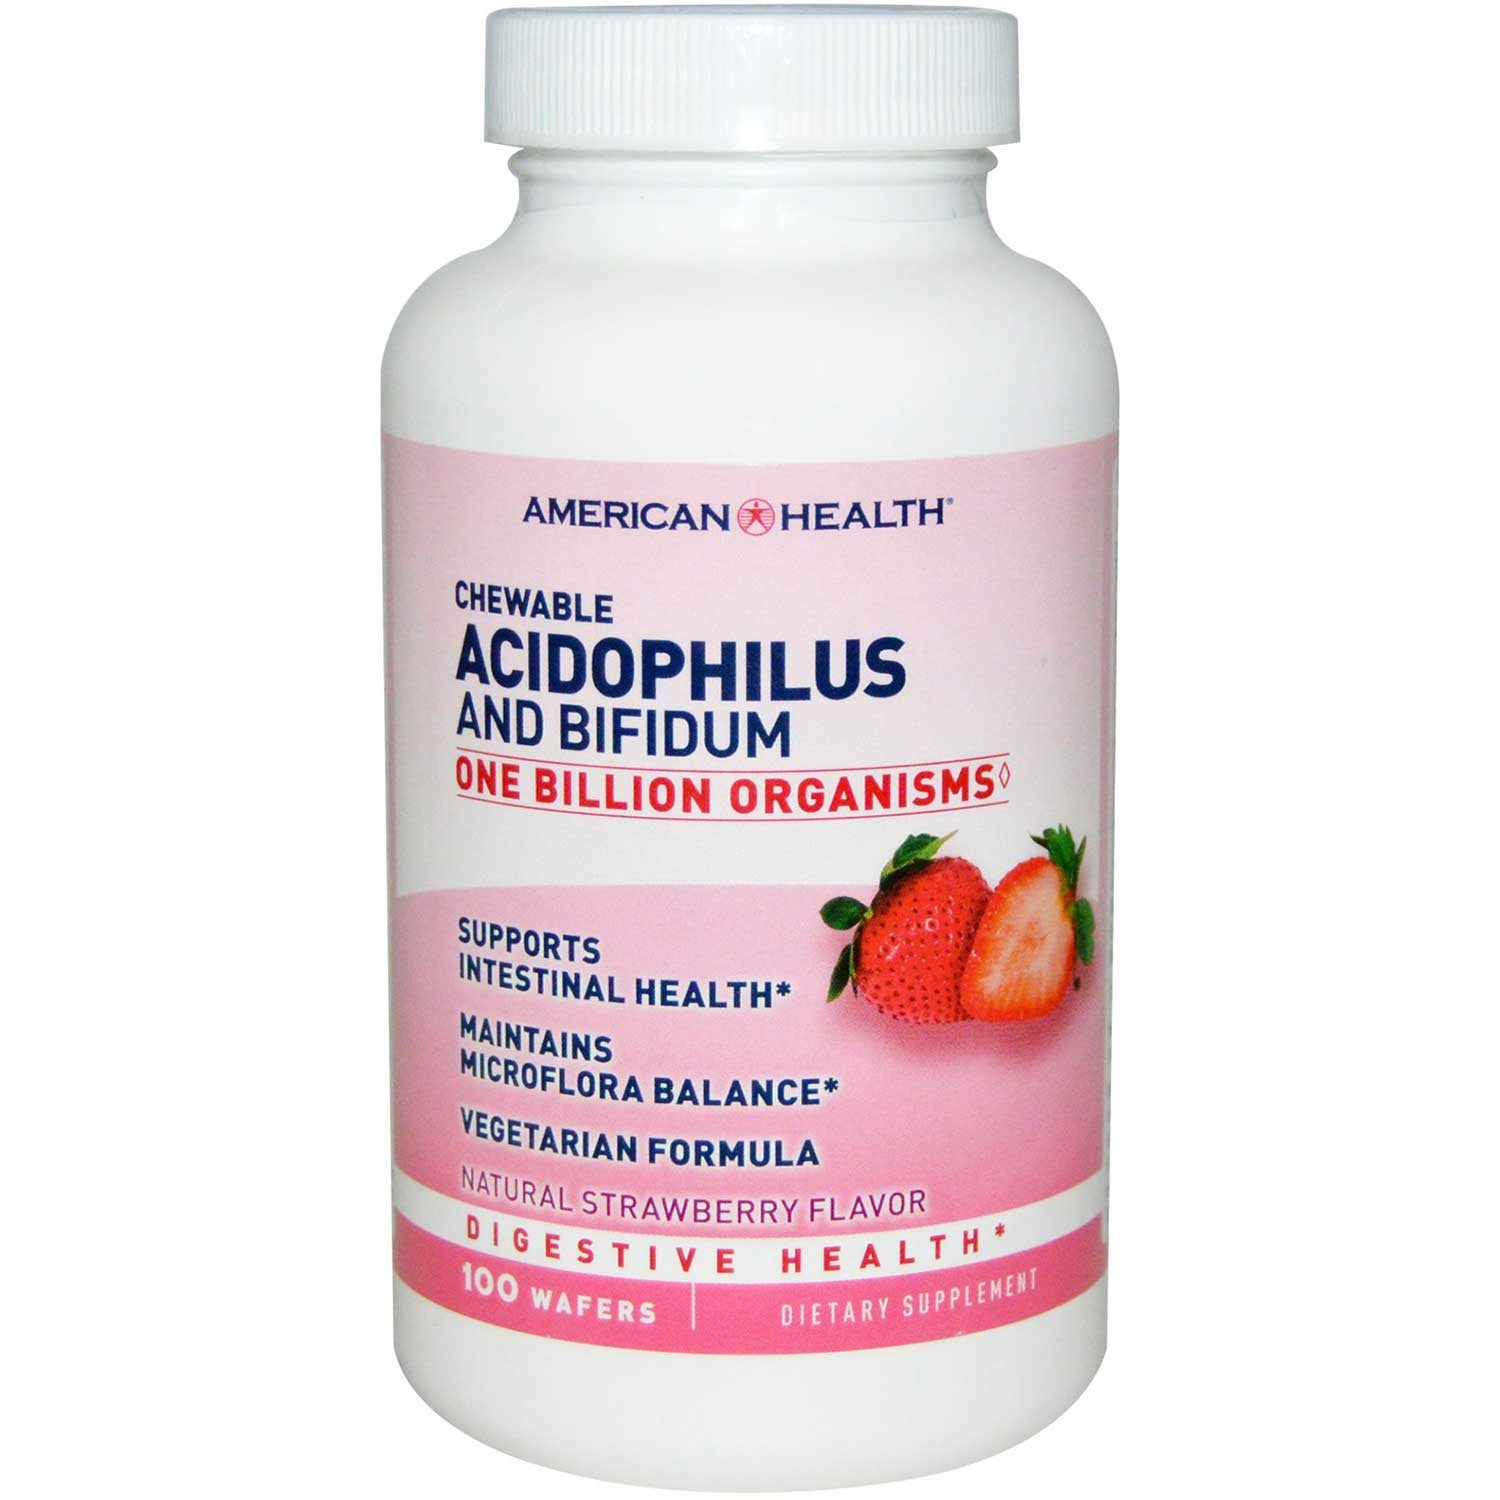 American Health Chewable Acidophilus w/Bifidus - Strawberry, 100 tabs.-NaturesWisdom